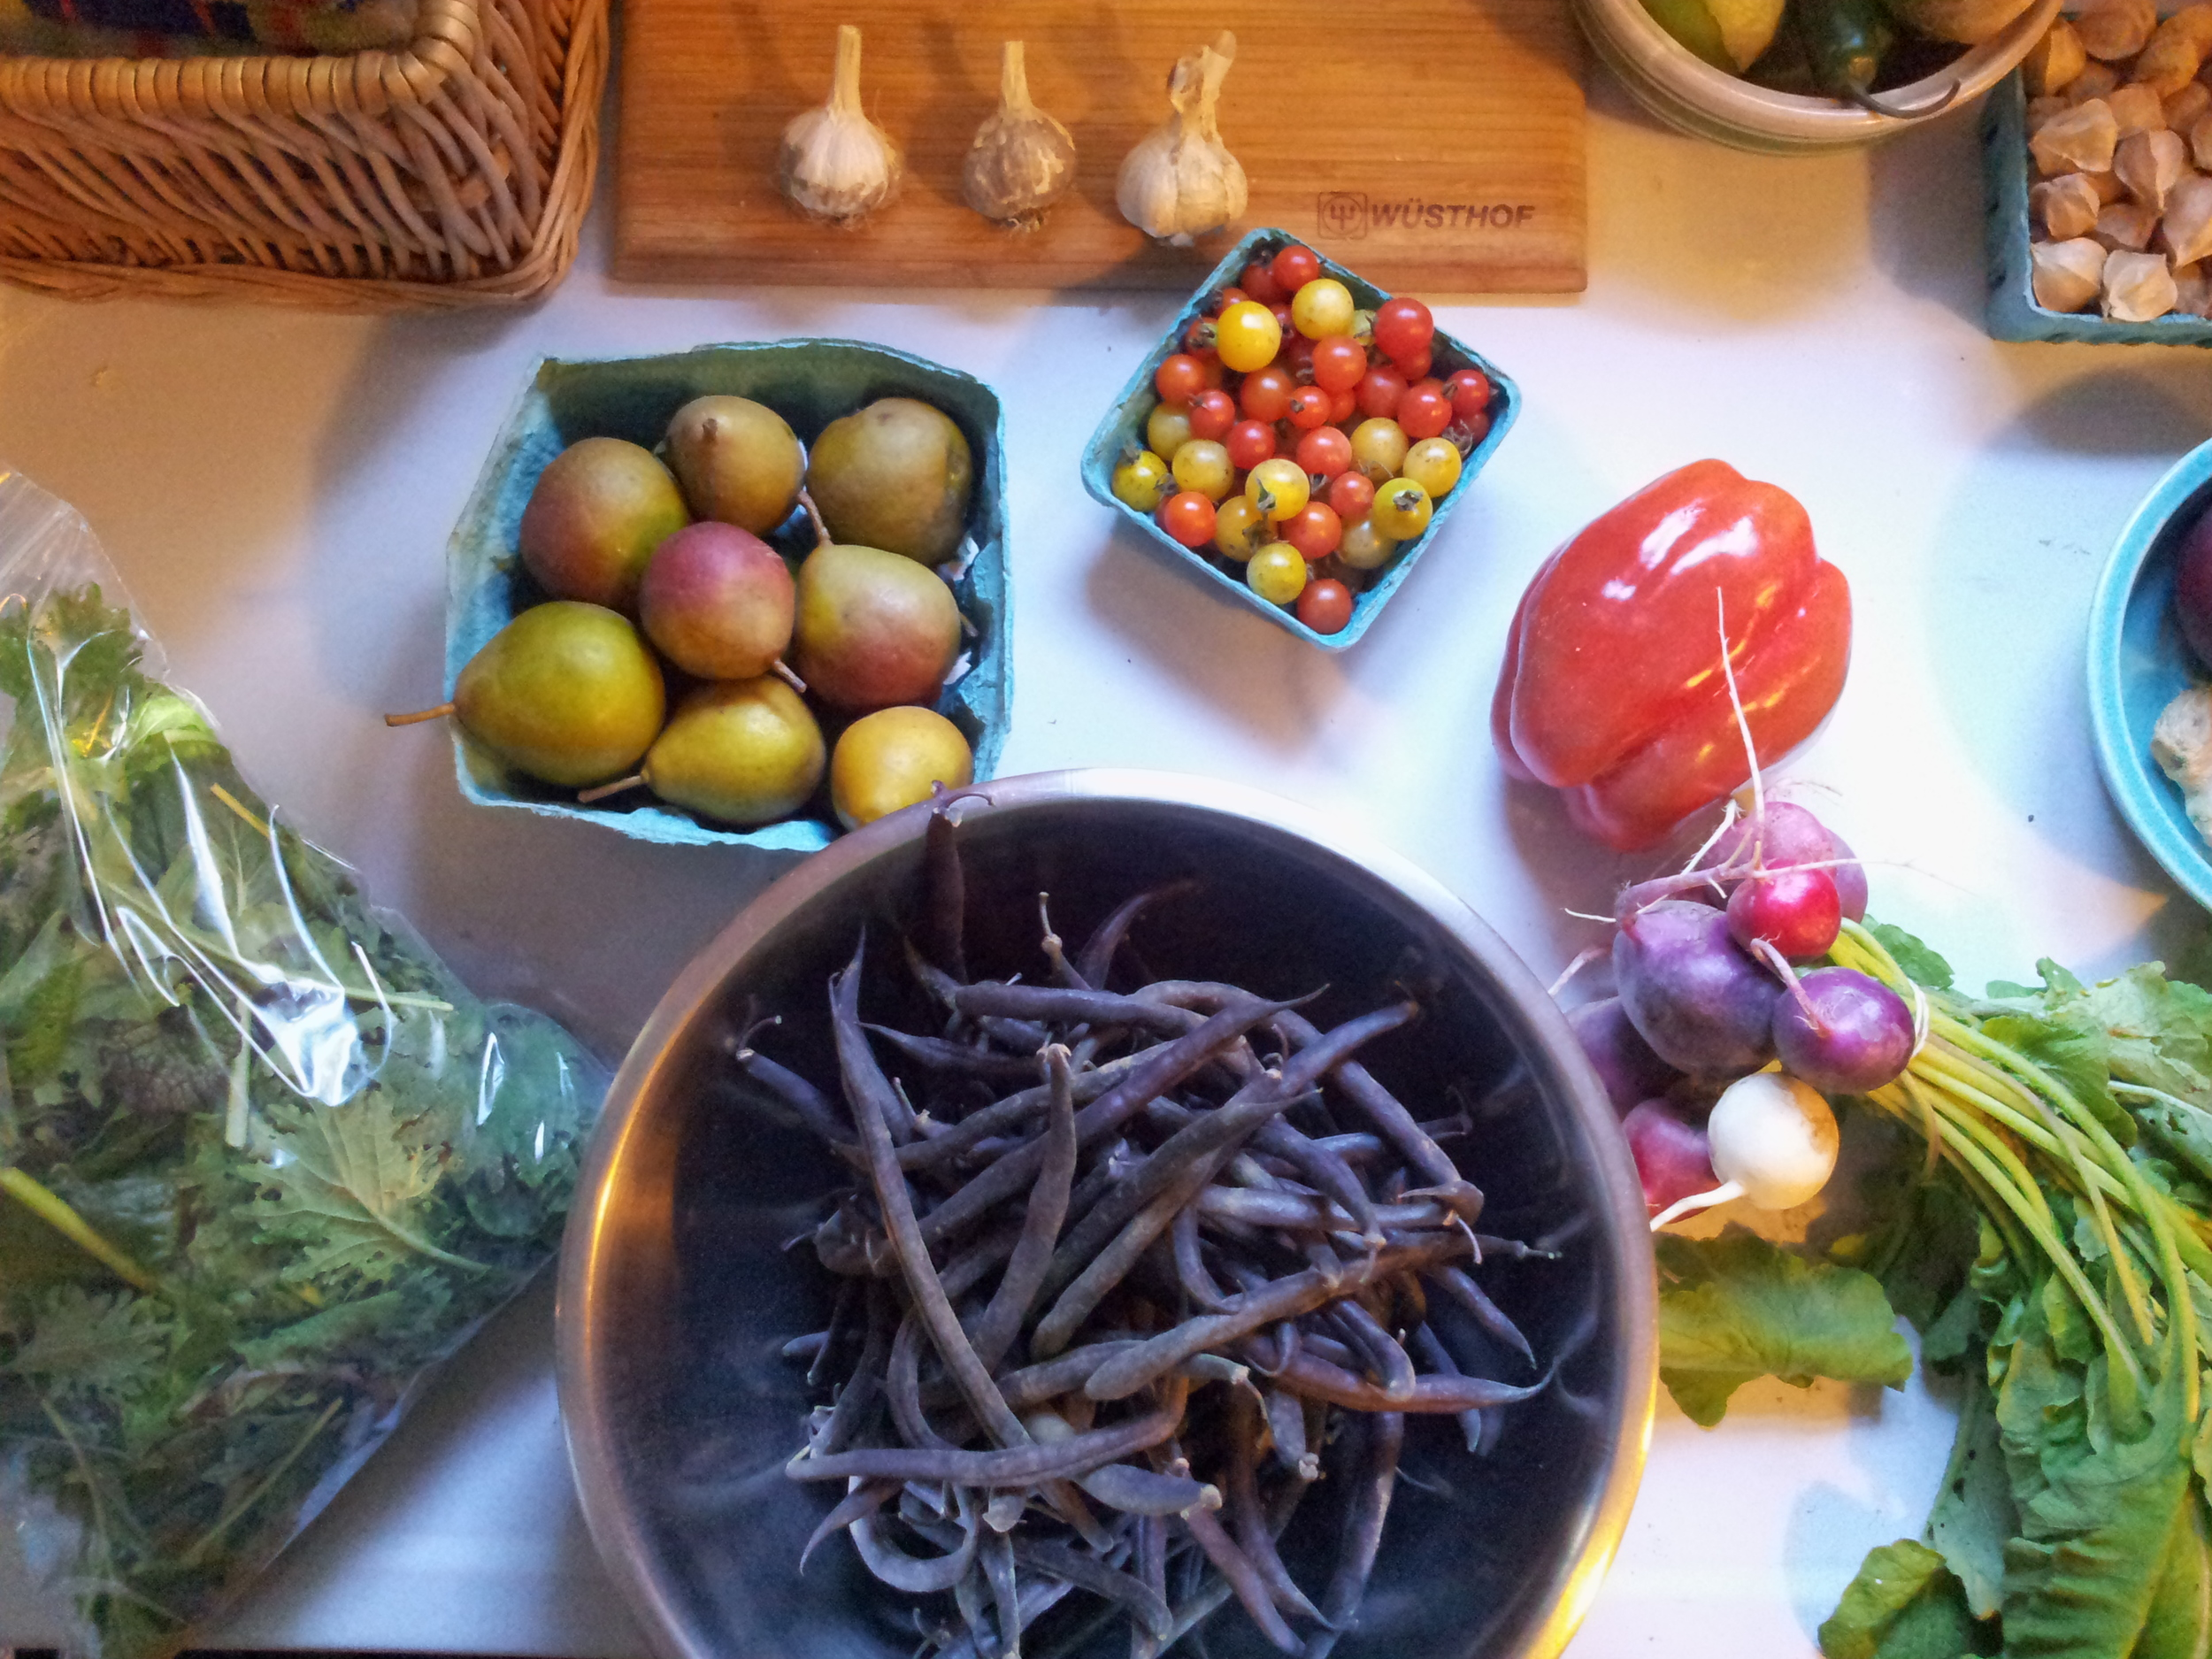 The September 18th share, minus 3 gorgeous Russet potatoes.